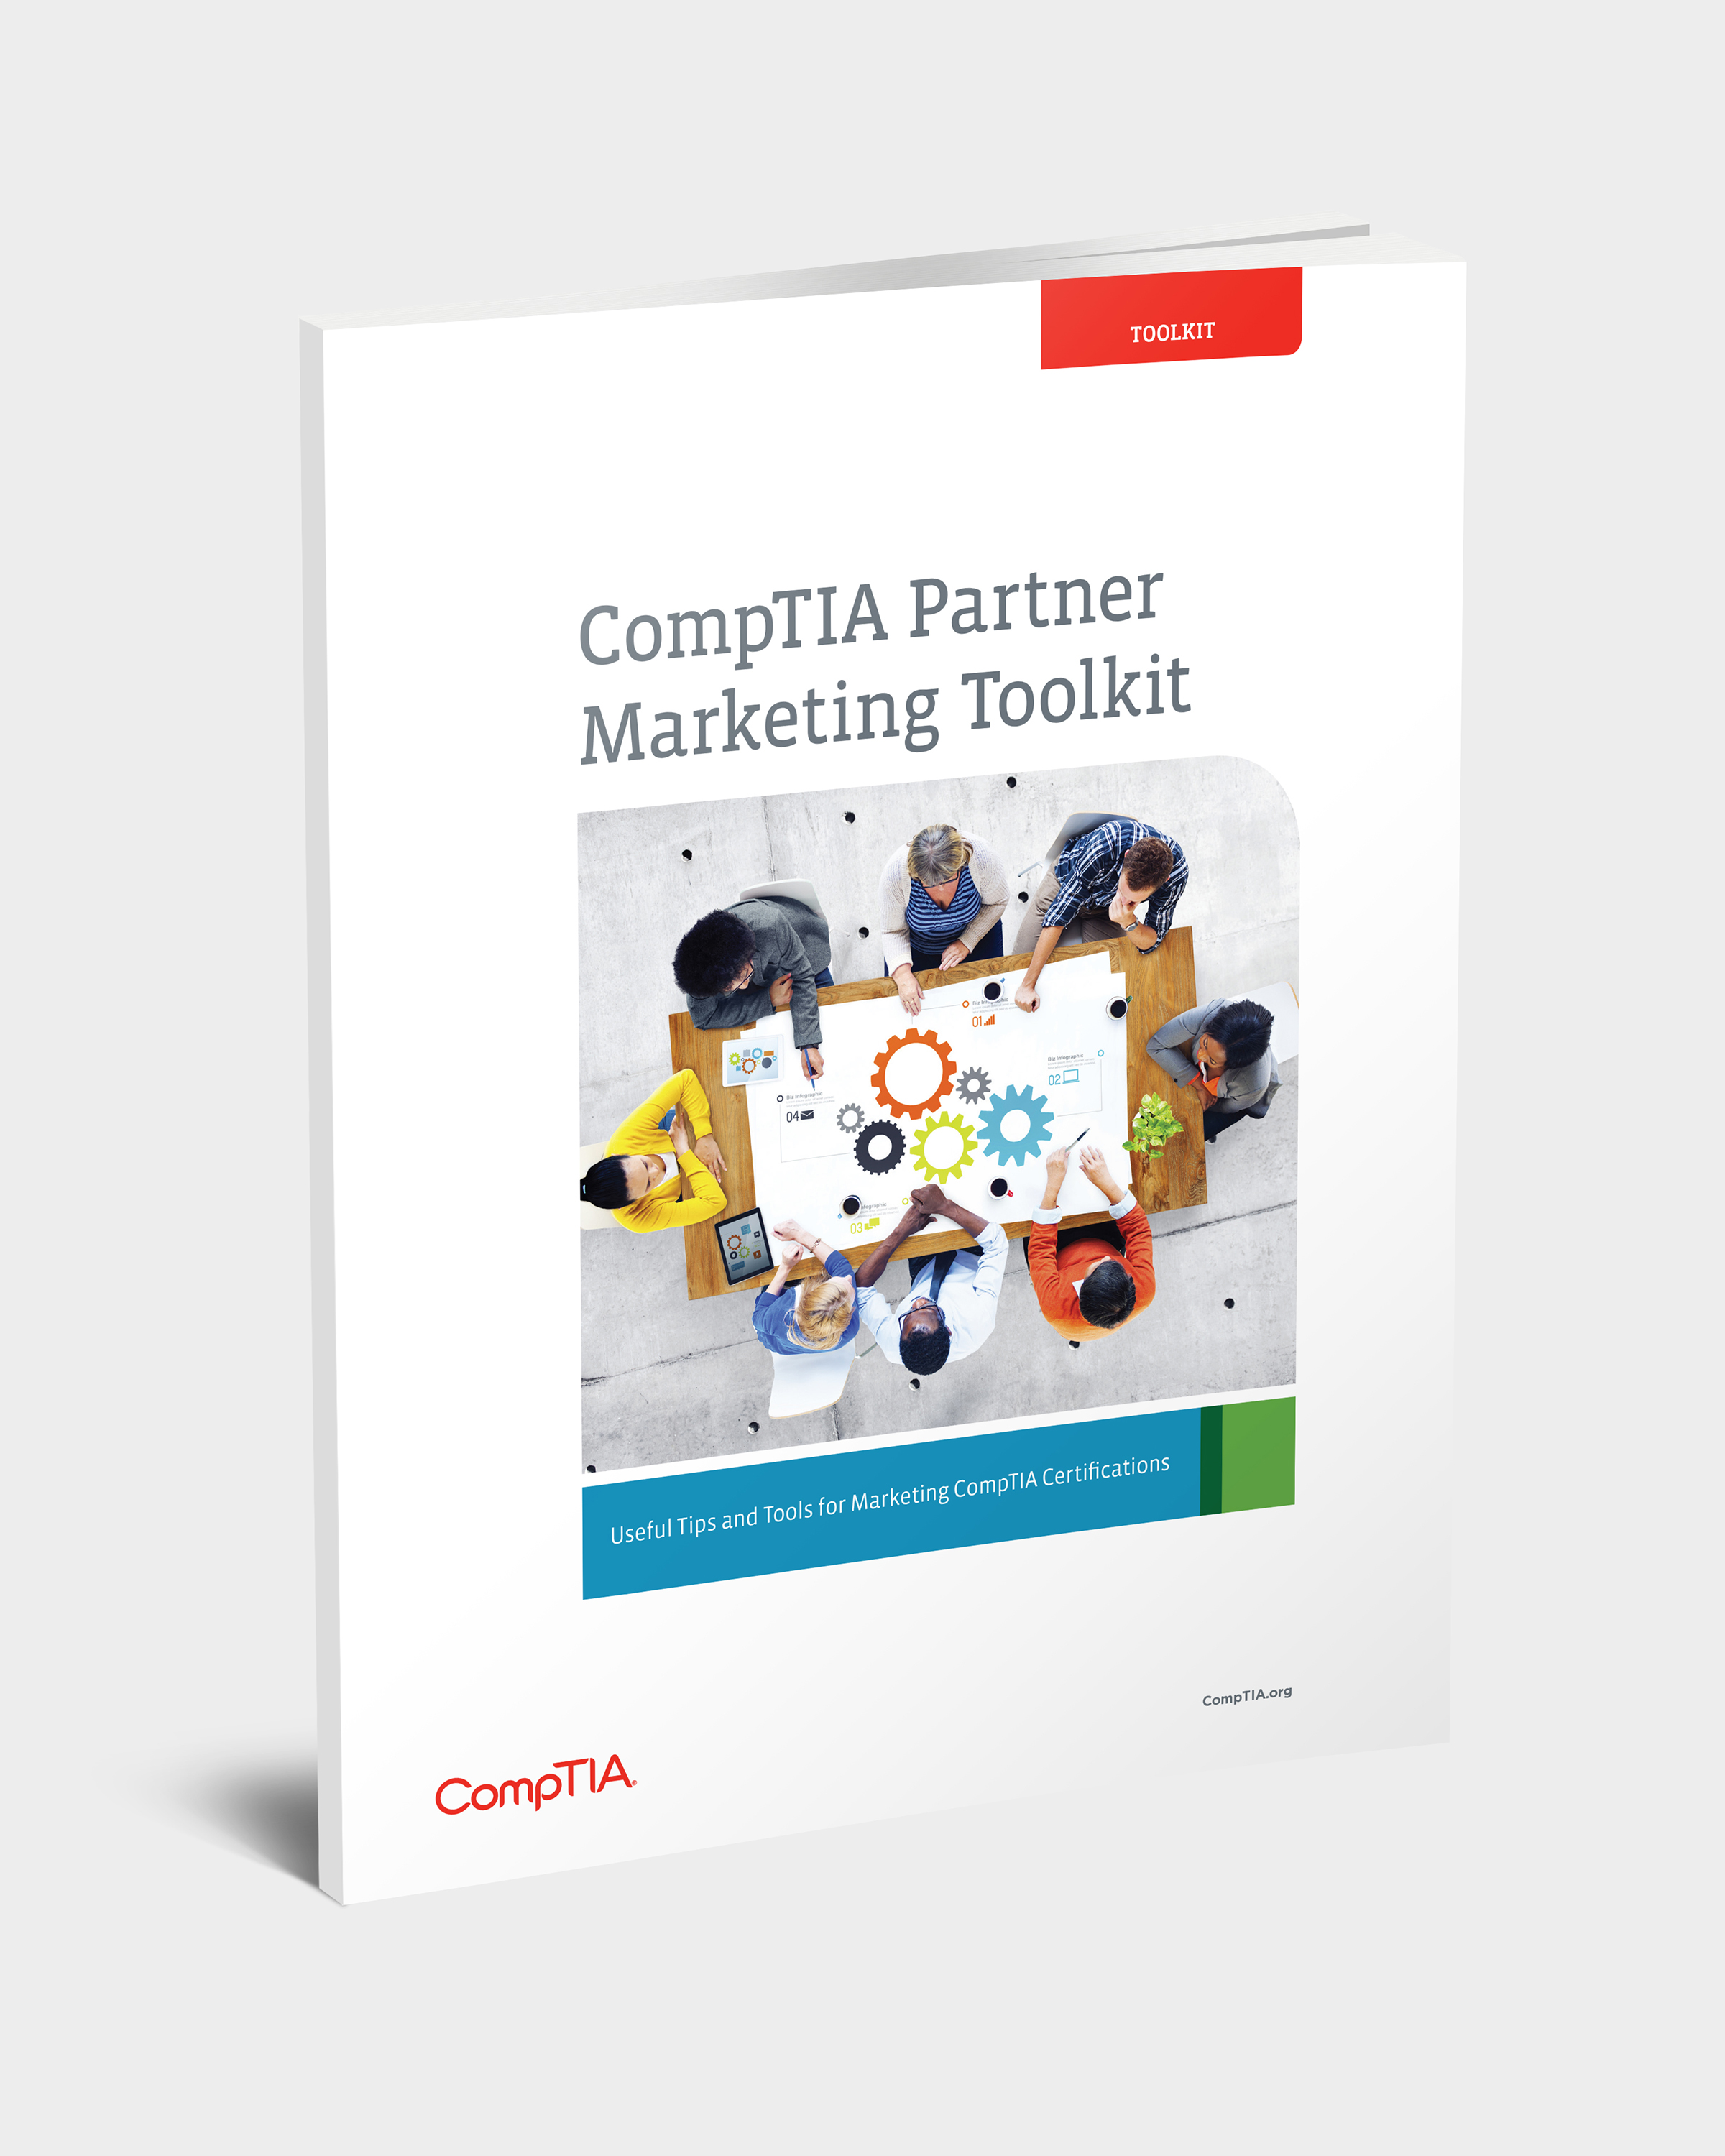 CompTIA Partner Marketing Toolkit